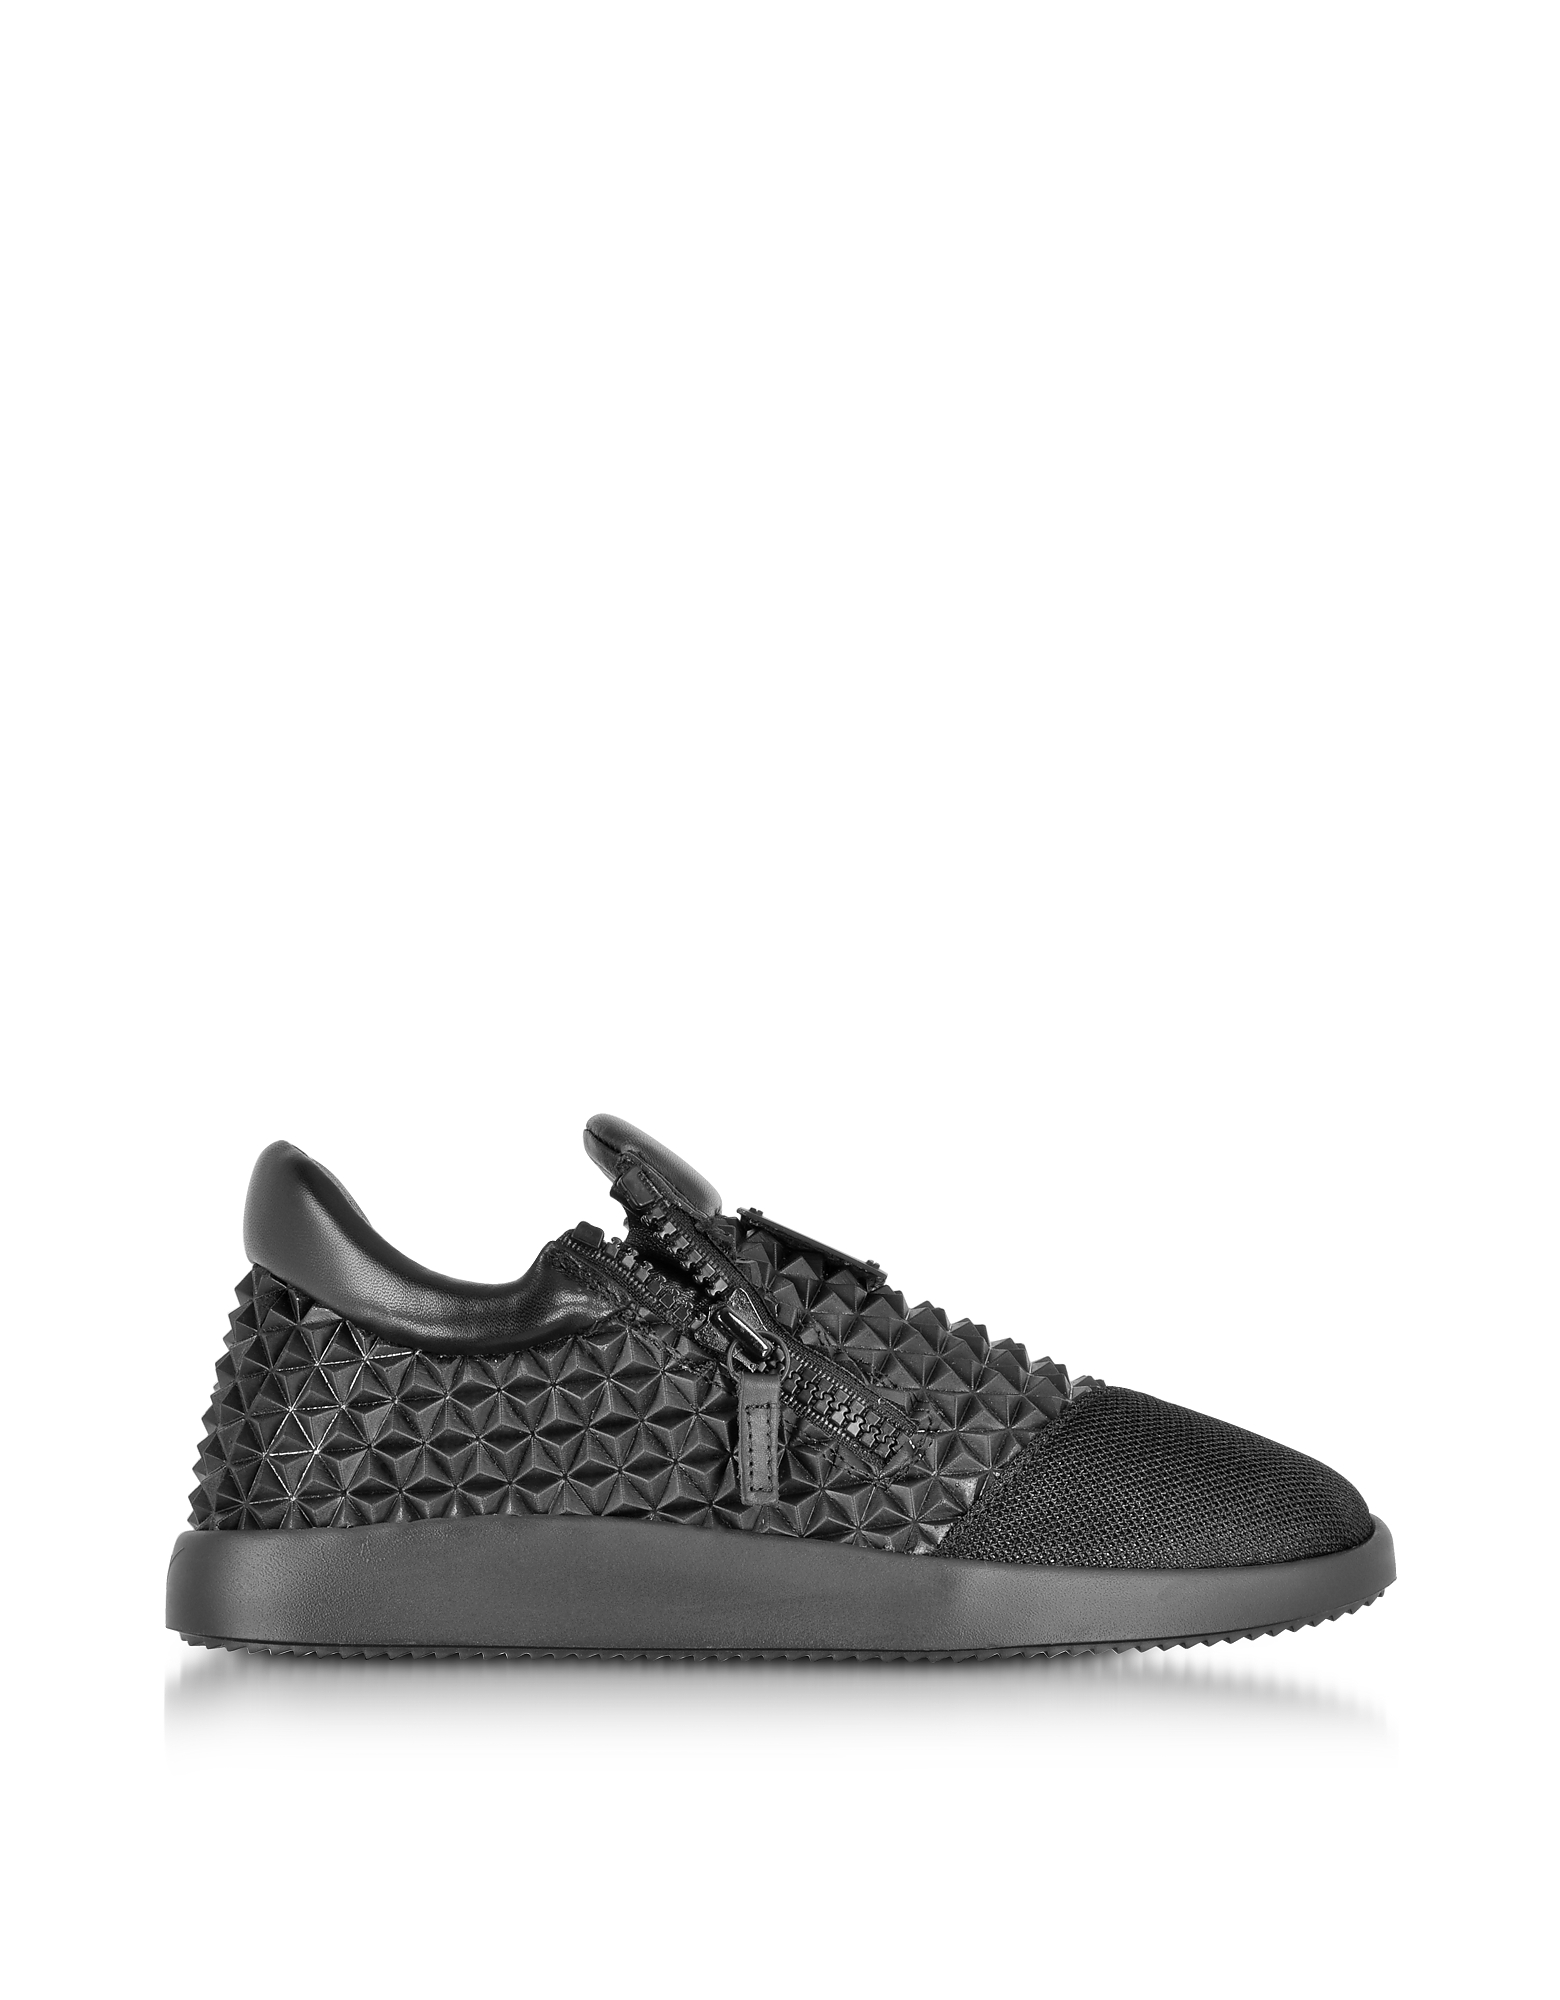 Giuseppe Zanotti Shoes, Black Studded Leather Low Top Sneakers